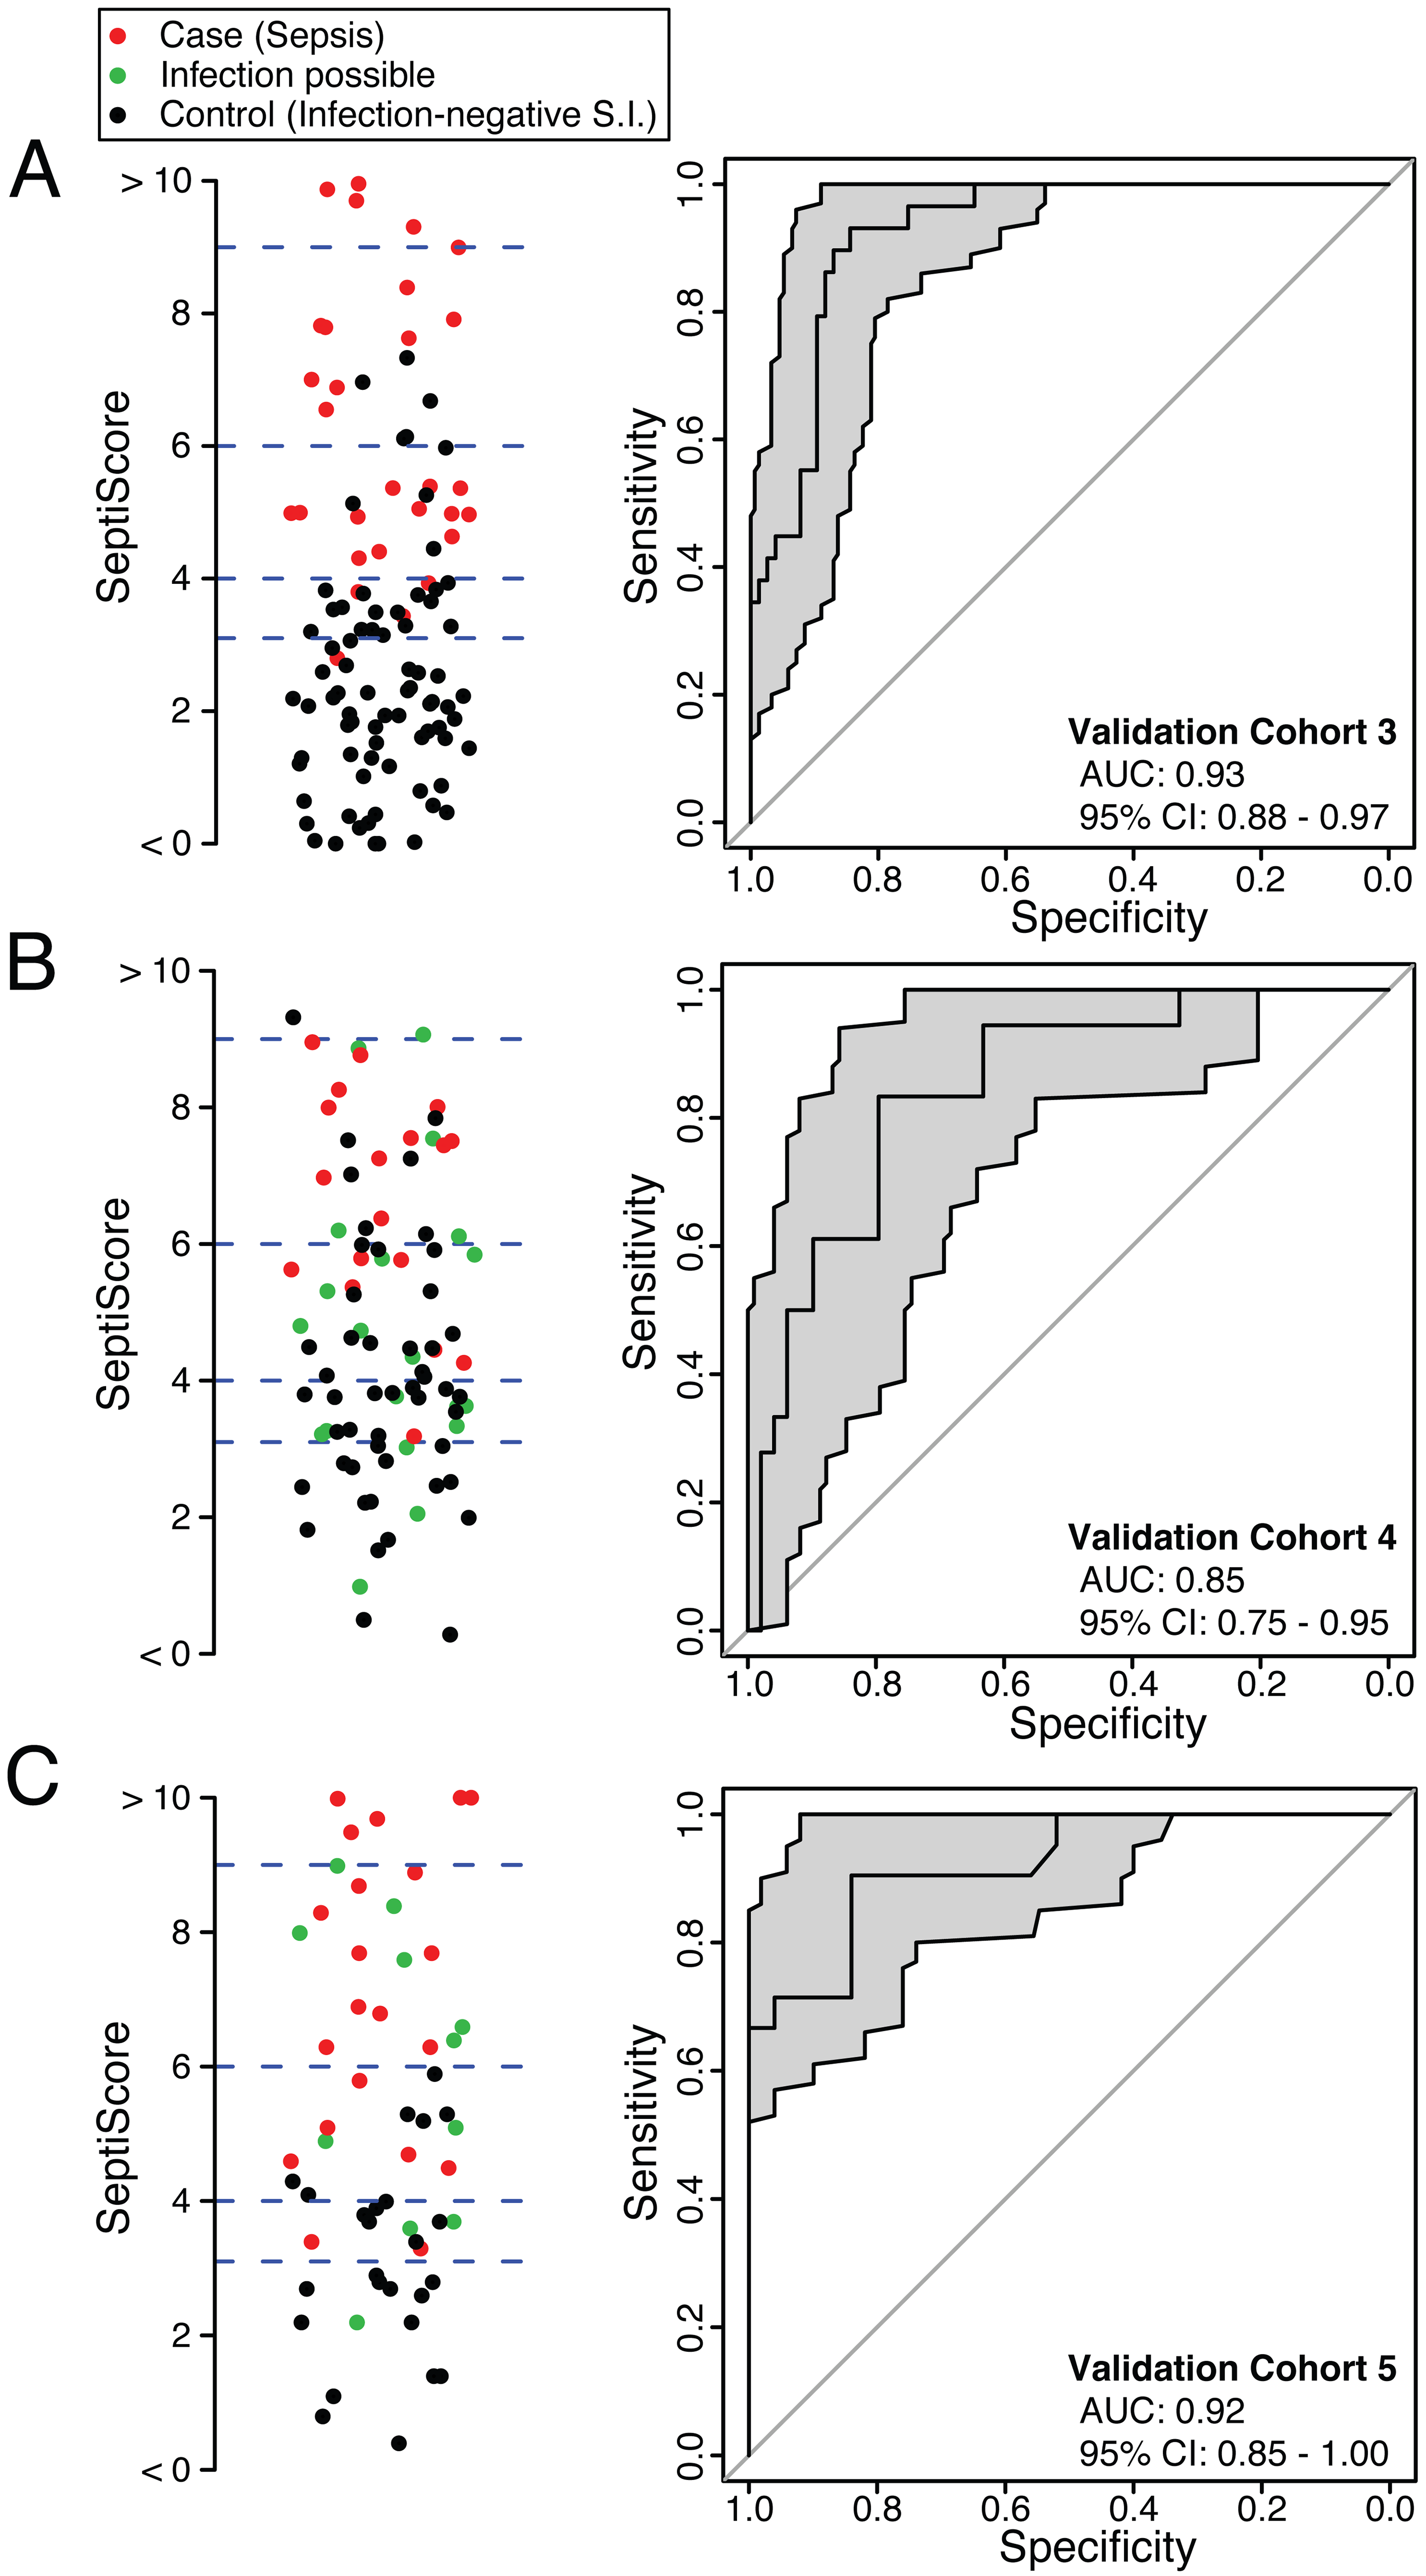 Performance of SeptiCyte Lab in validation cohorts 3, 4, and 5.